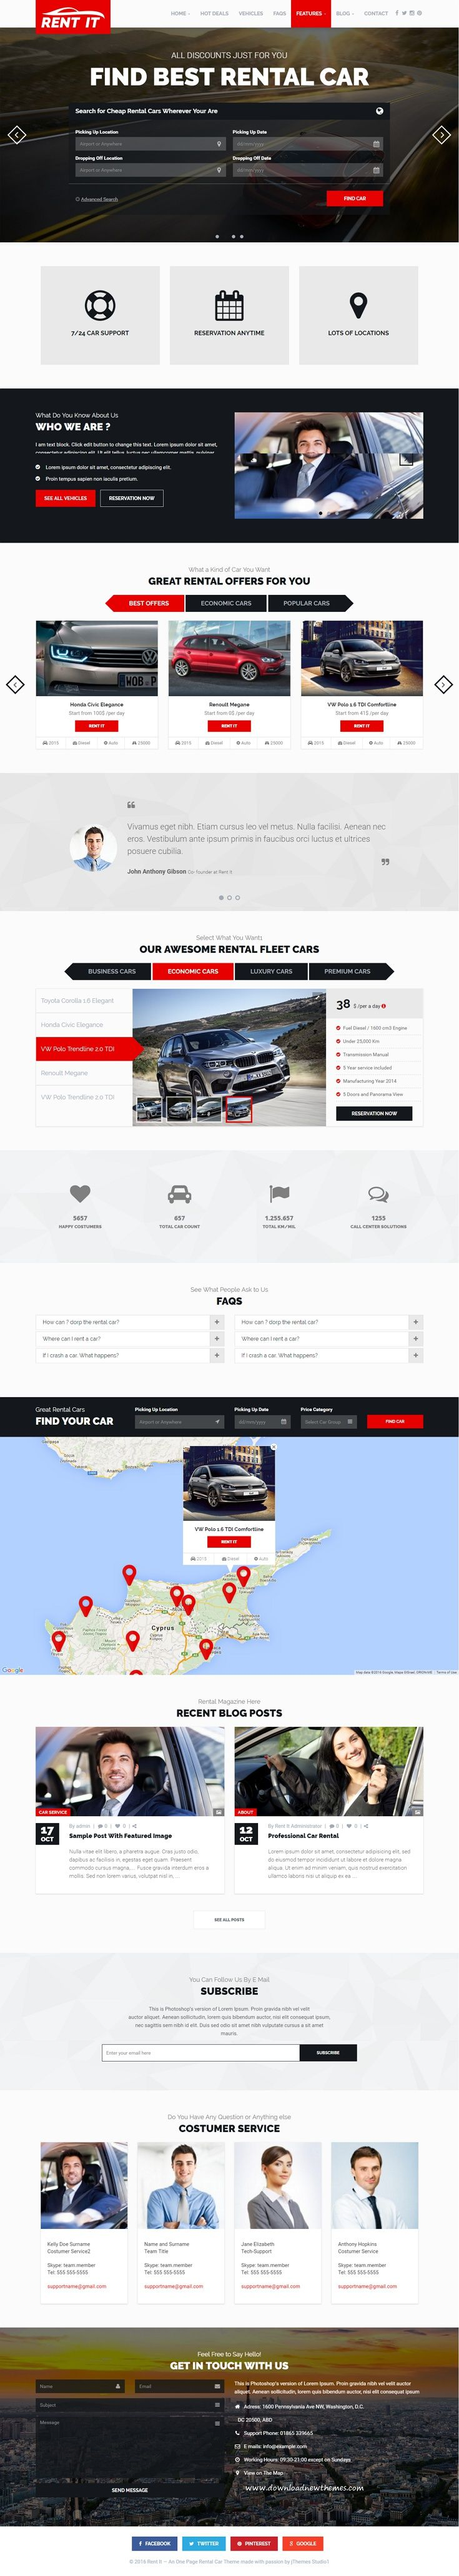 Alamo coupons online - Rentit Car Rental Wordpress Theme It Comes With Multiple Options In A Single Package